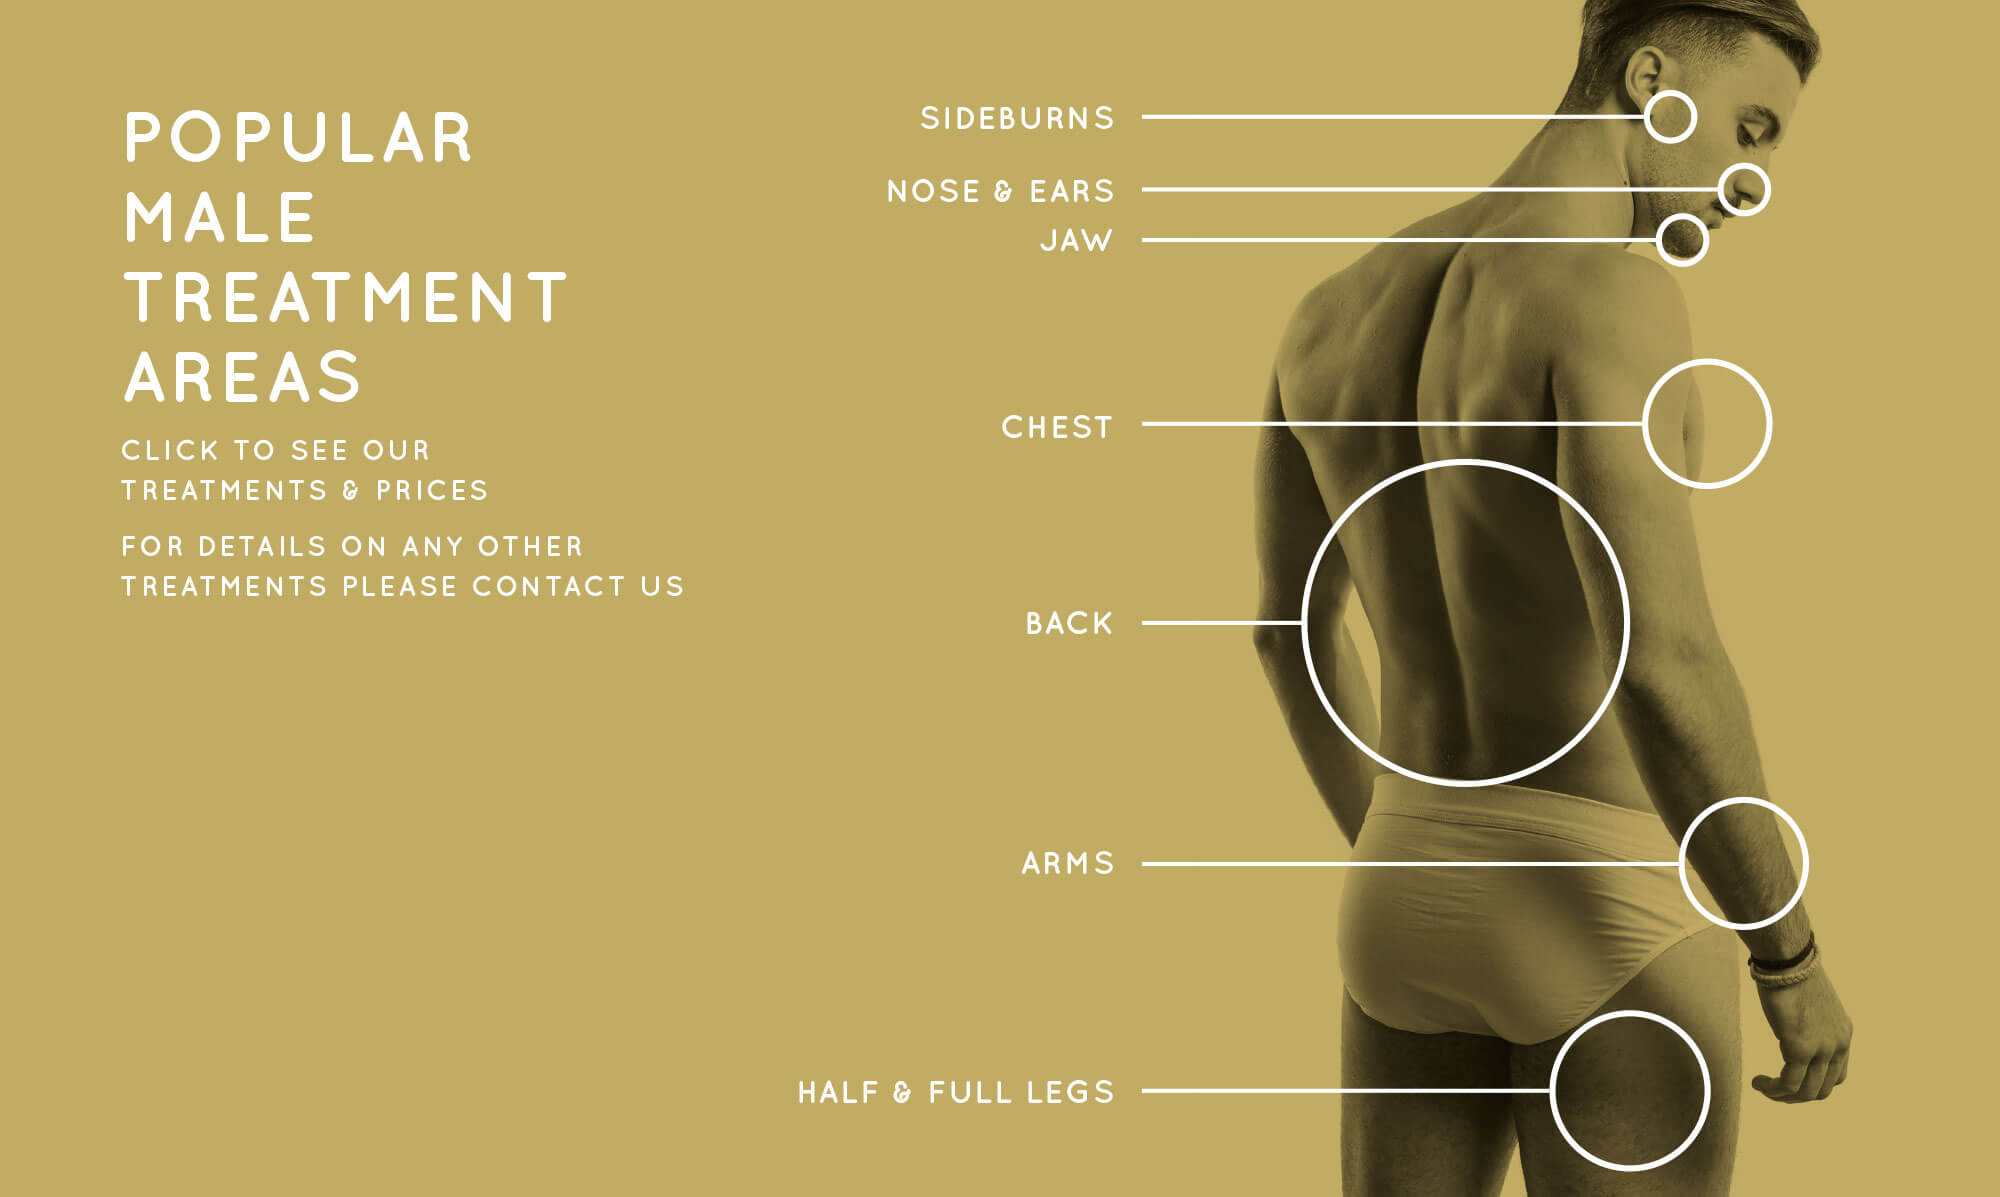 Popular male treatment areas for laser hair removal